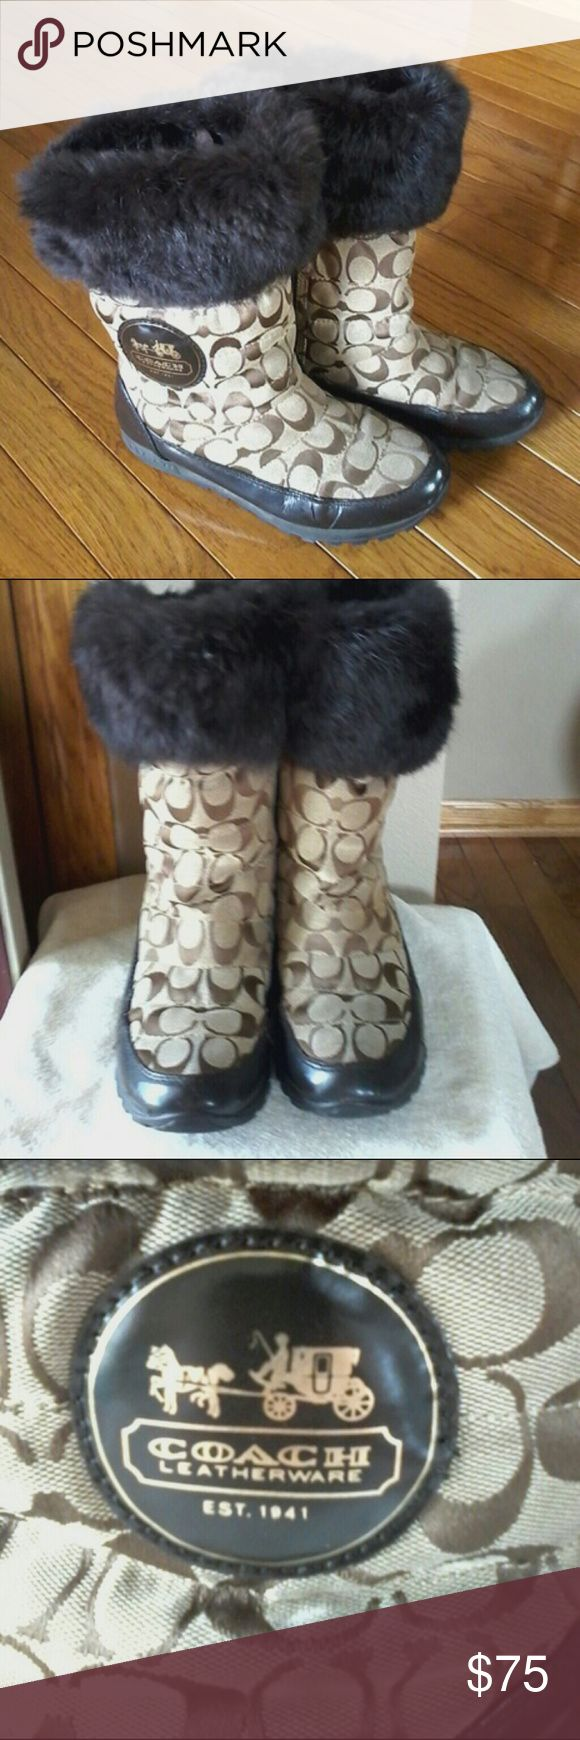 Coach boots They have been worn.   Notice wear in pictures. Coach Shoes Winter & Rain Boots